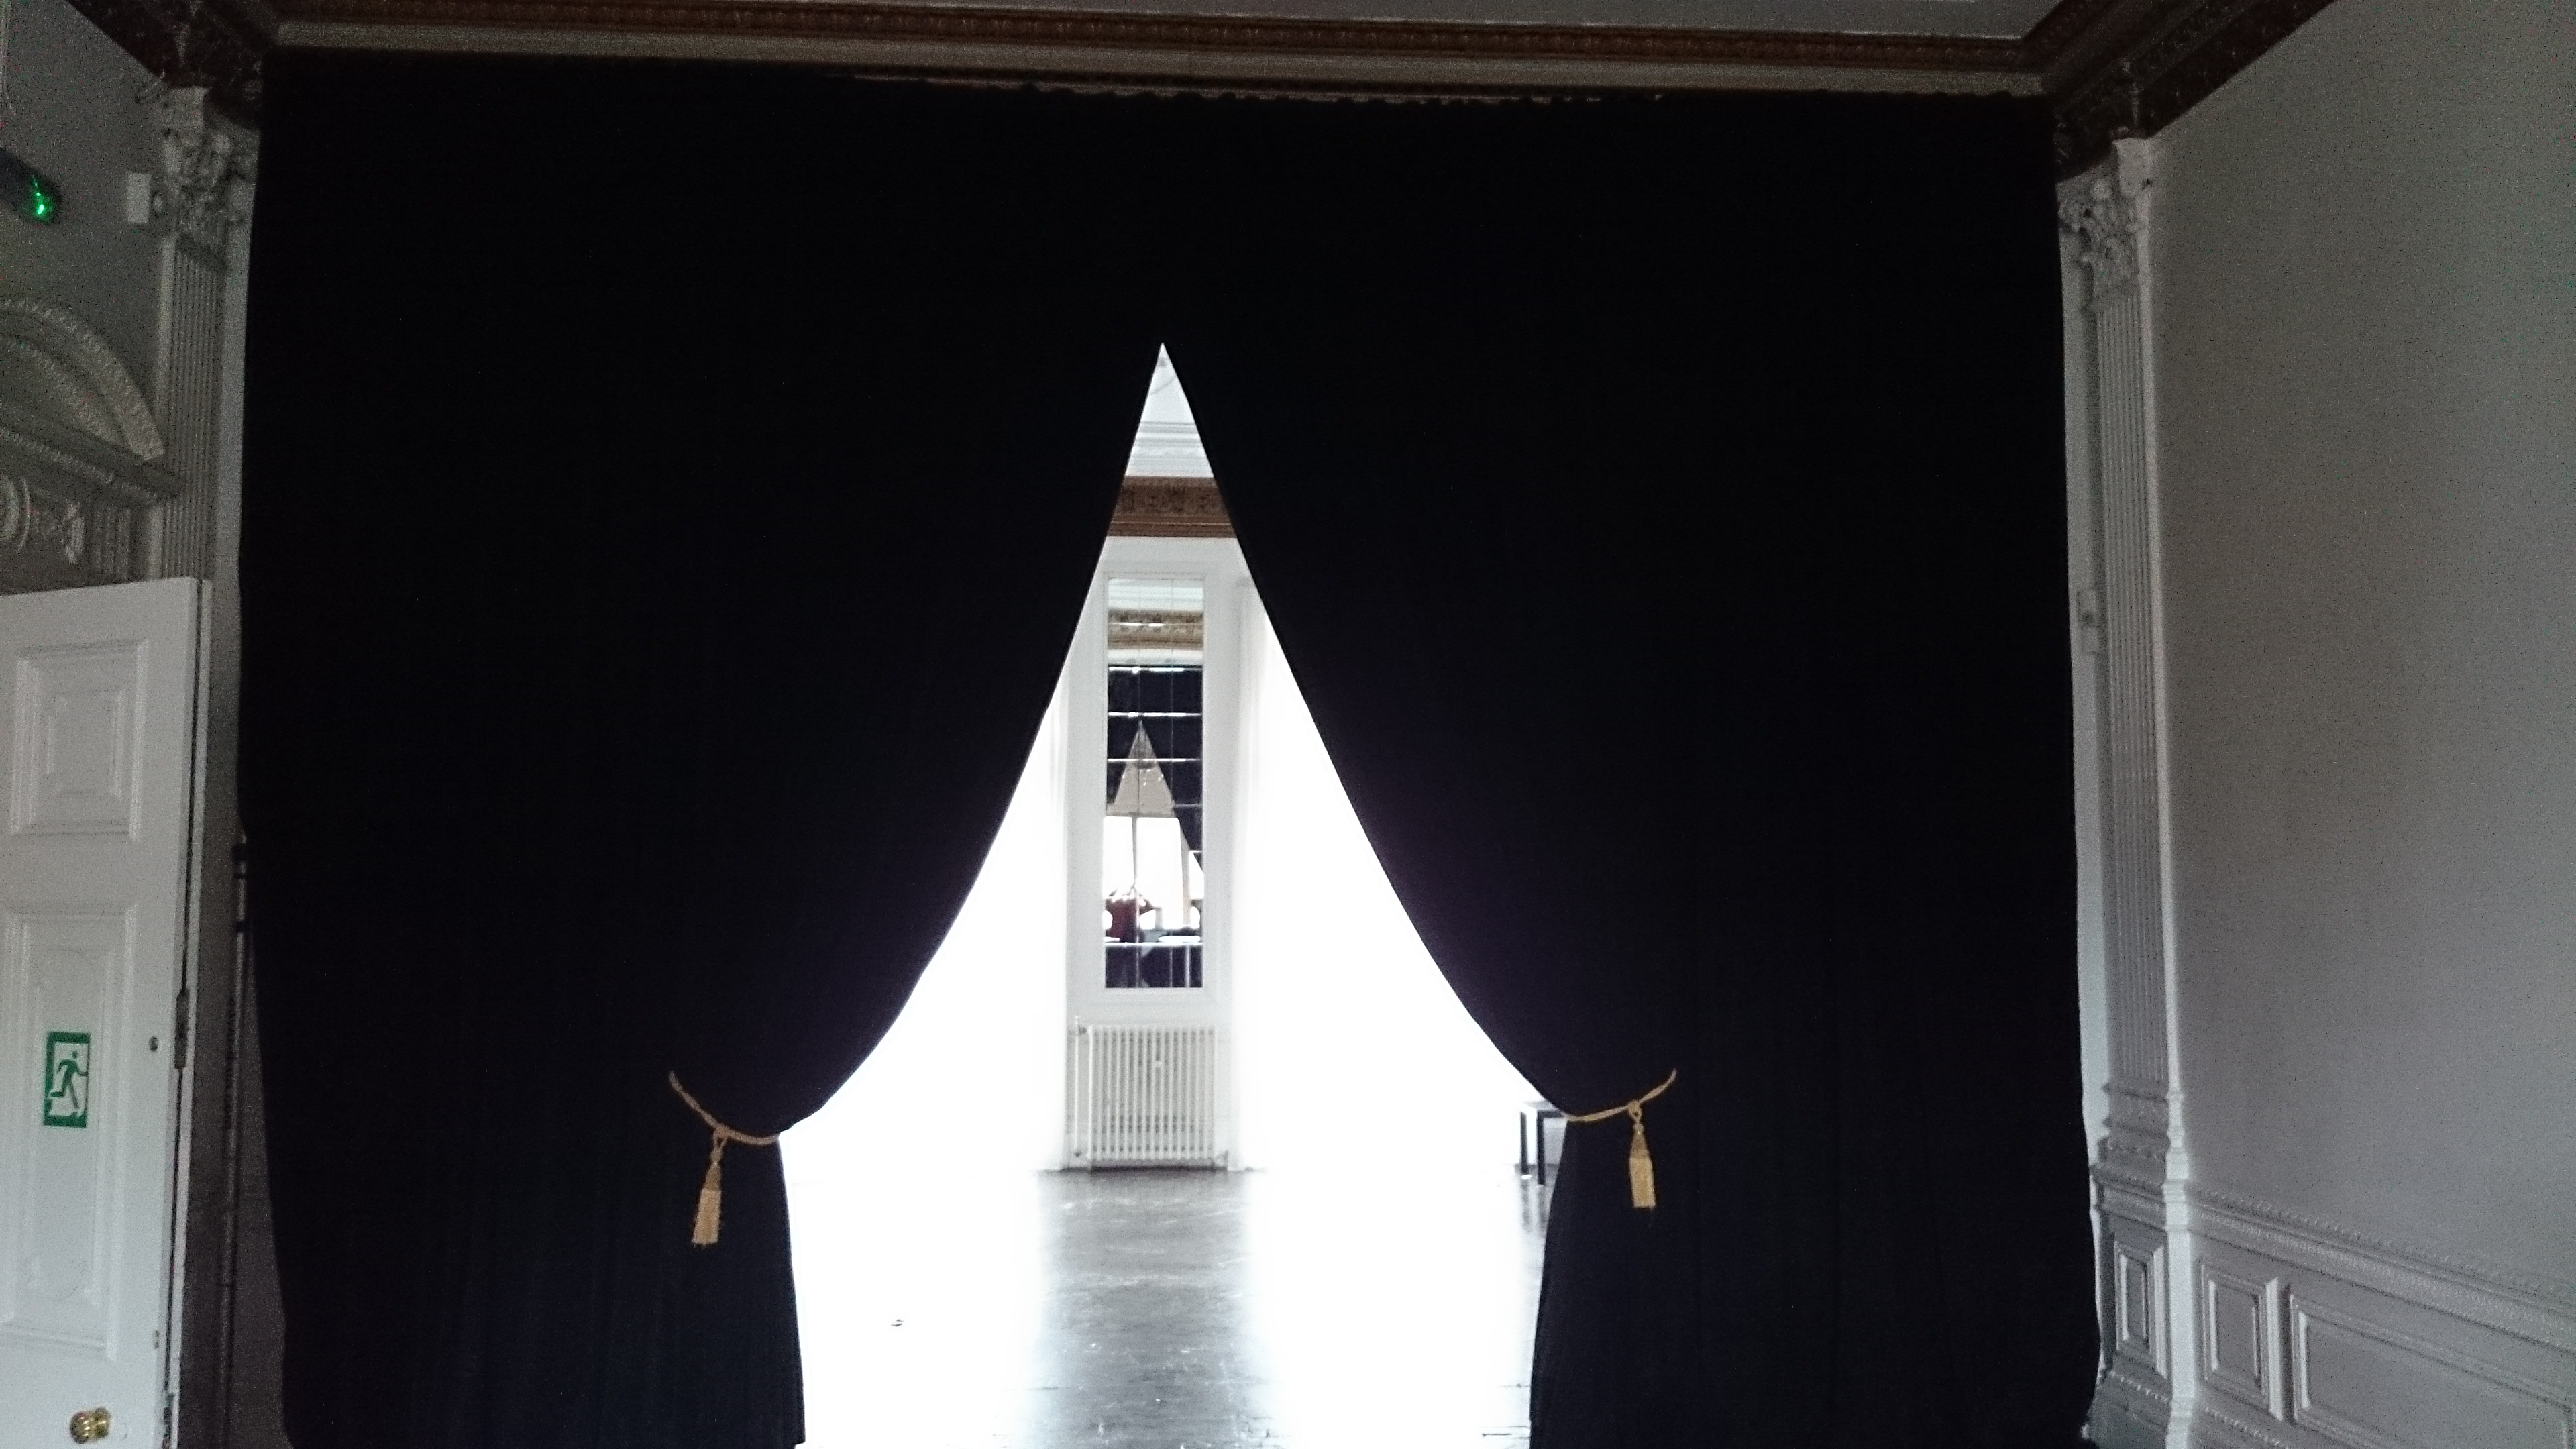 Curtains And Draperies Drape Hire Venue Drapes Stage Backdrops Stage And Theatre